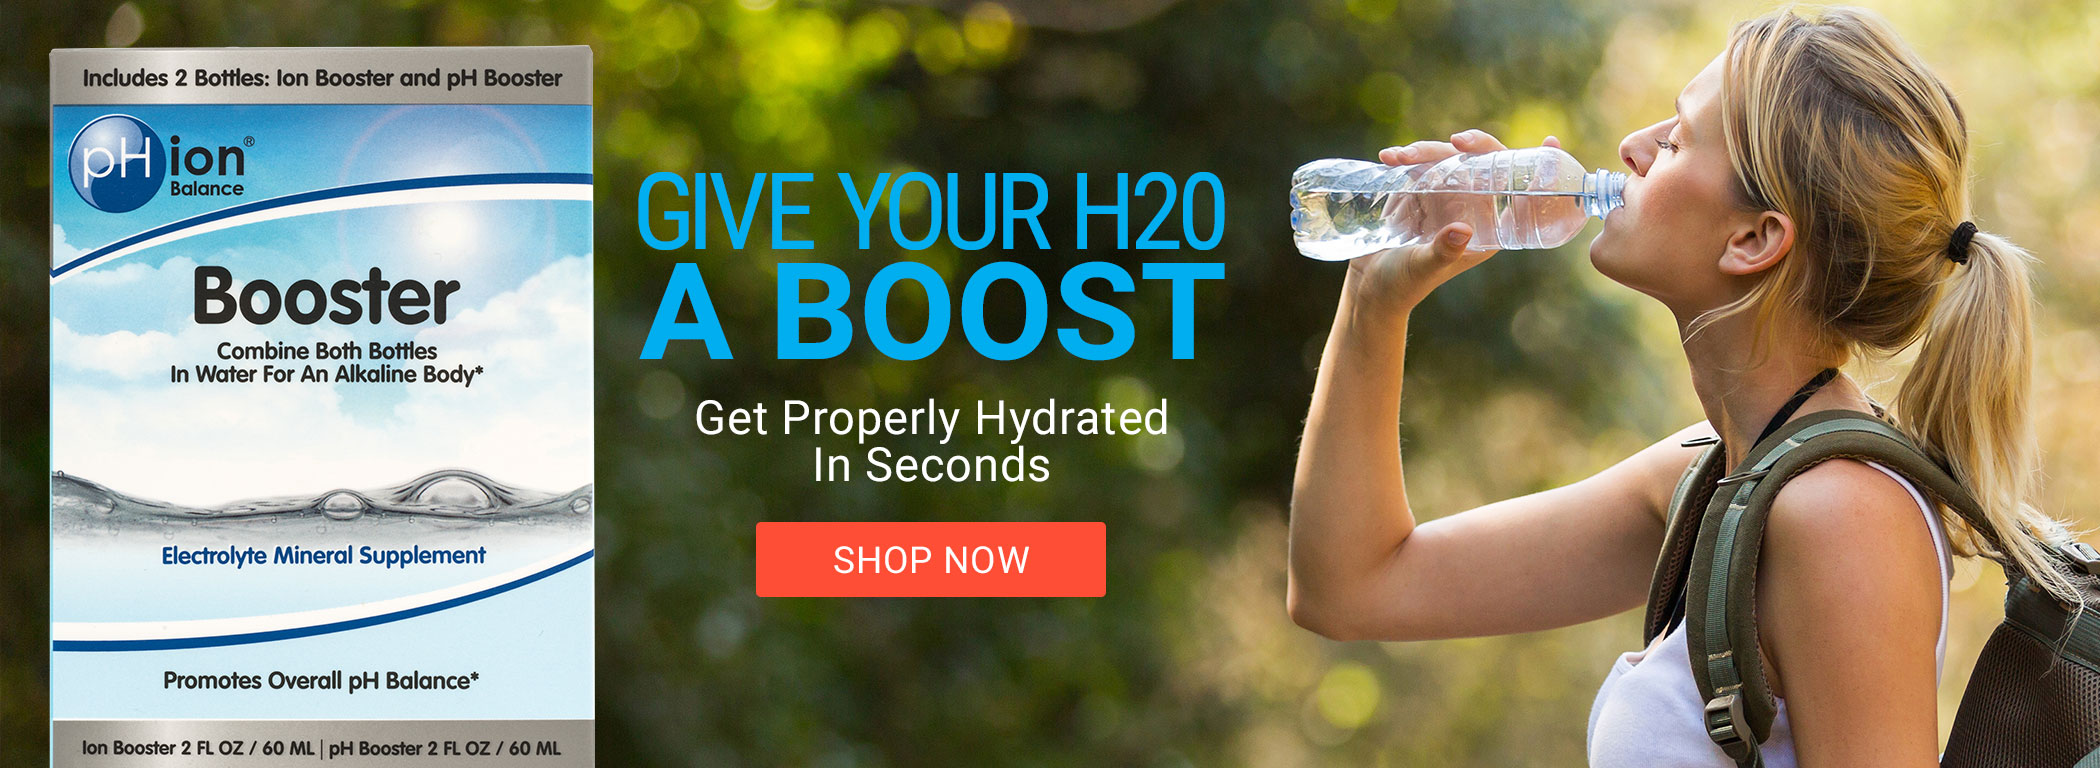 Give your H2O a Boost